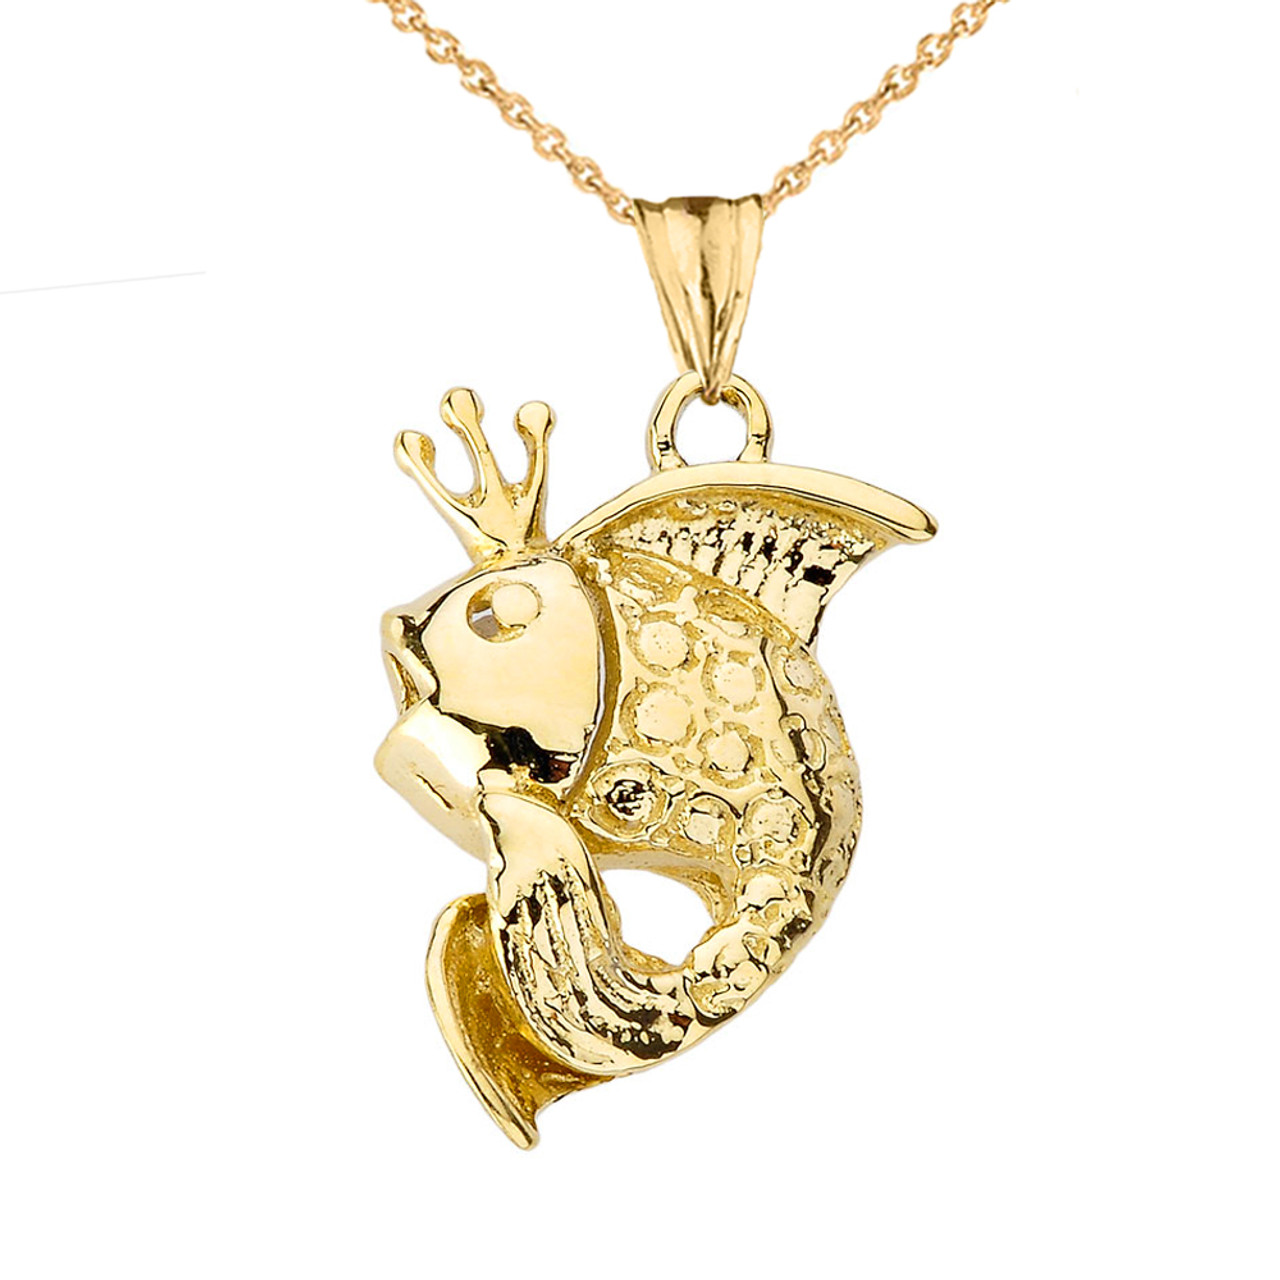 14K Yellow Gold Gold Fish Pendant With Necklace